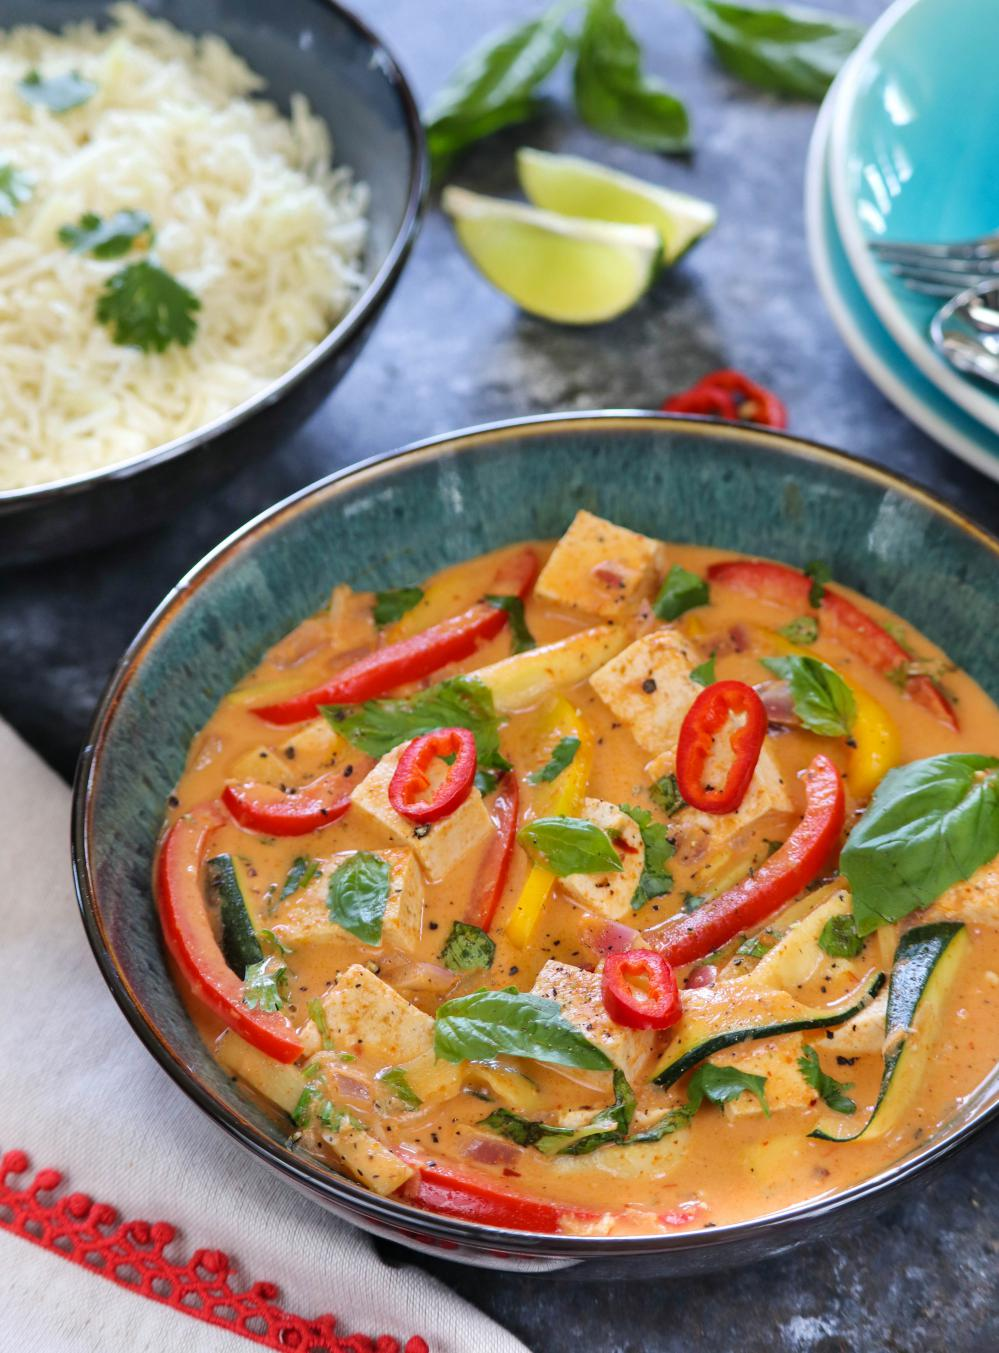 Vegan Thai Red Curry With Tofu And Vegetables | Ruchiskitchen